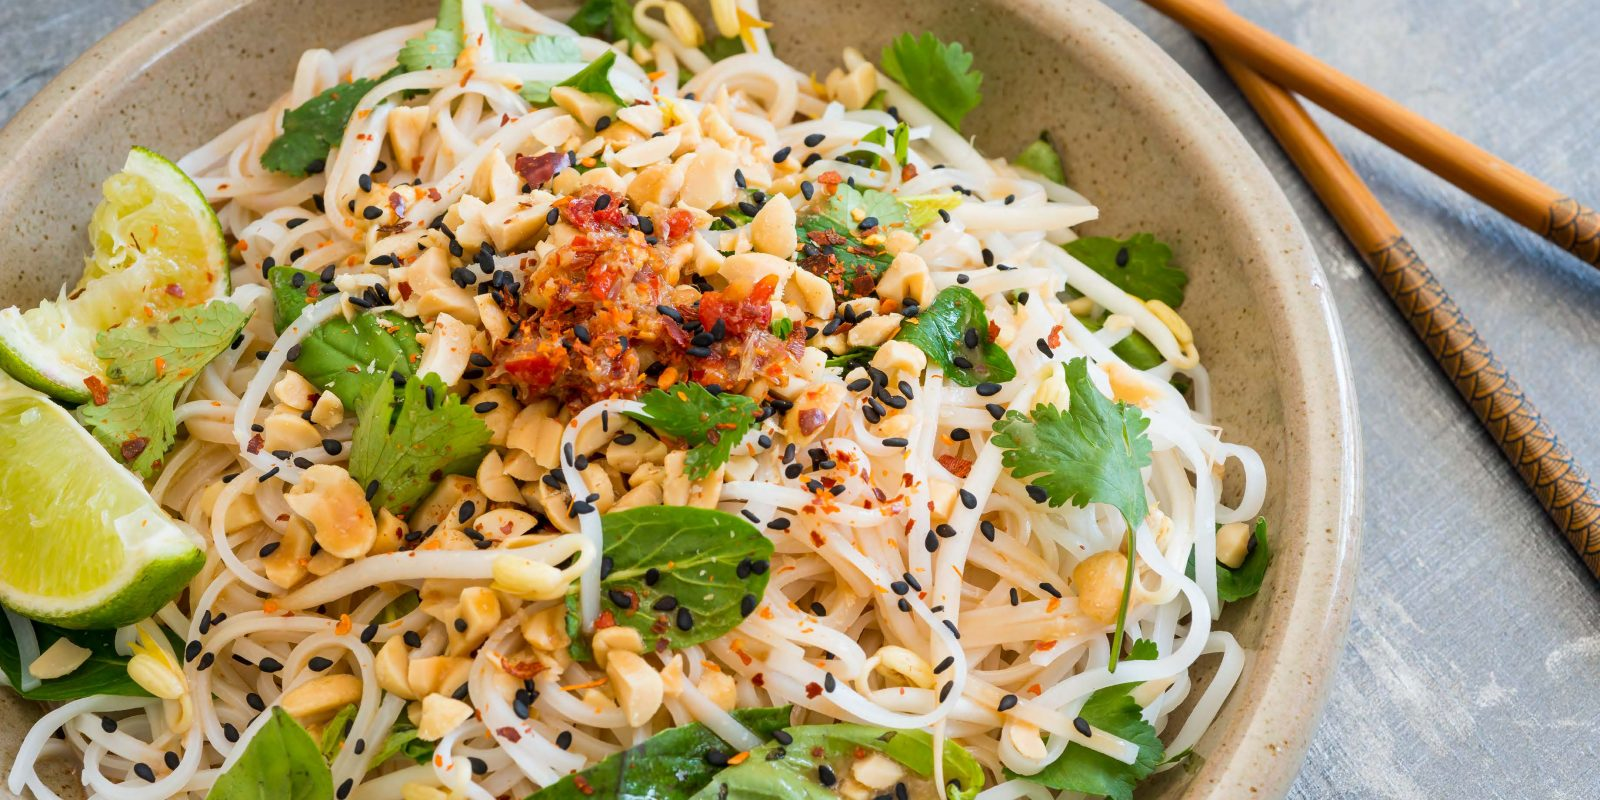 Coconut and Herb Noodle Salad